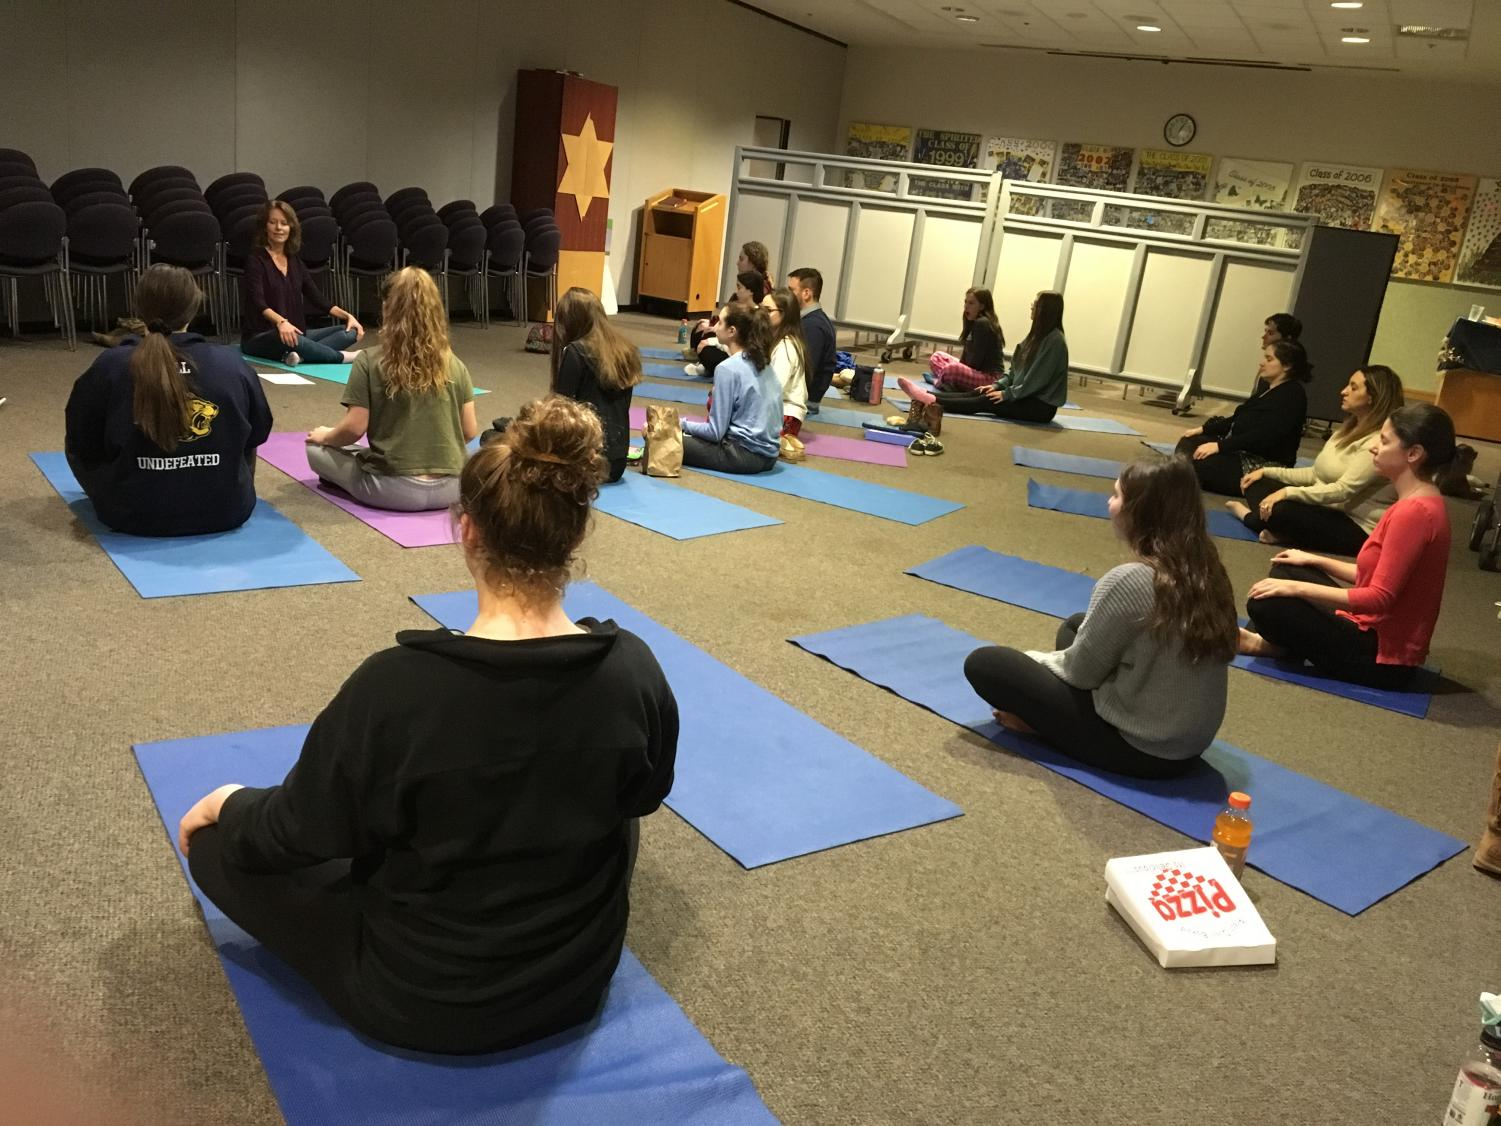 Students and faculty practice yoga poses in a yoga workshop during lunch and Community Time. It was the third part of the school's wellness series, which also included dog therapy and hypnosis sessions.